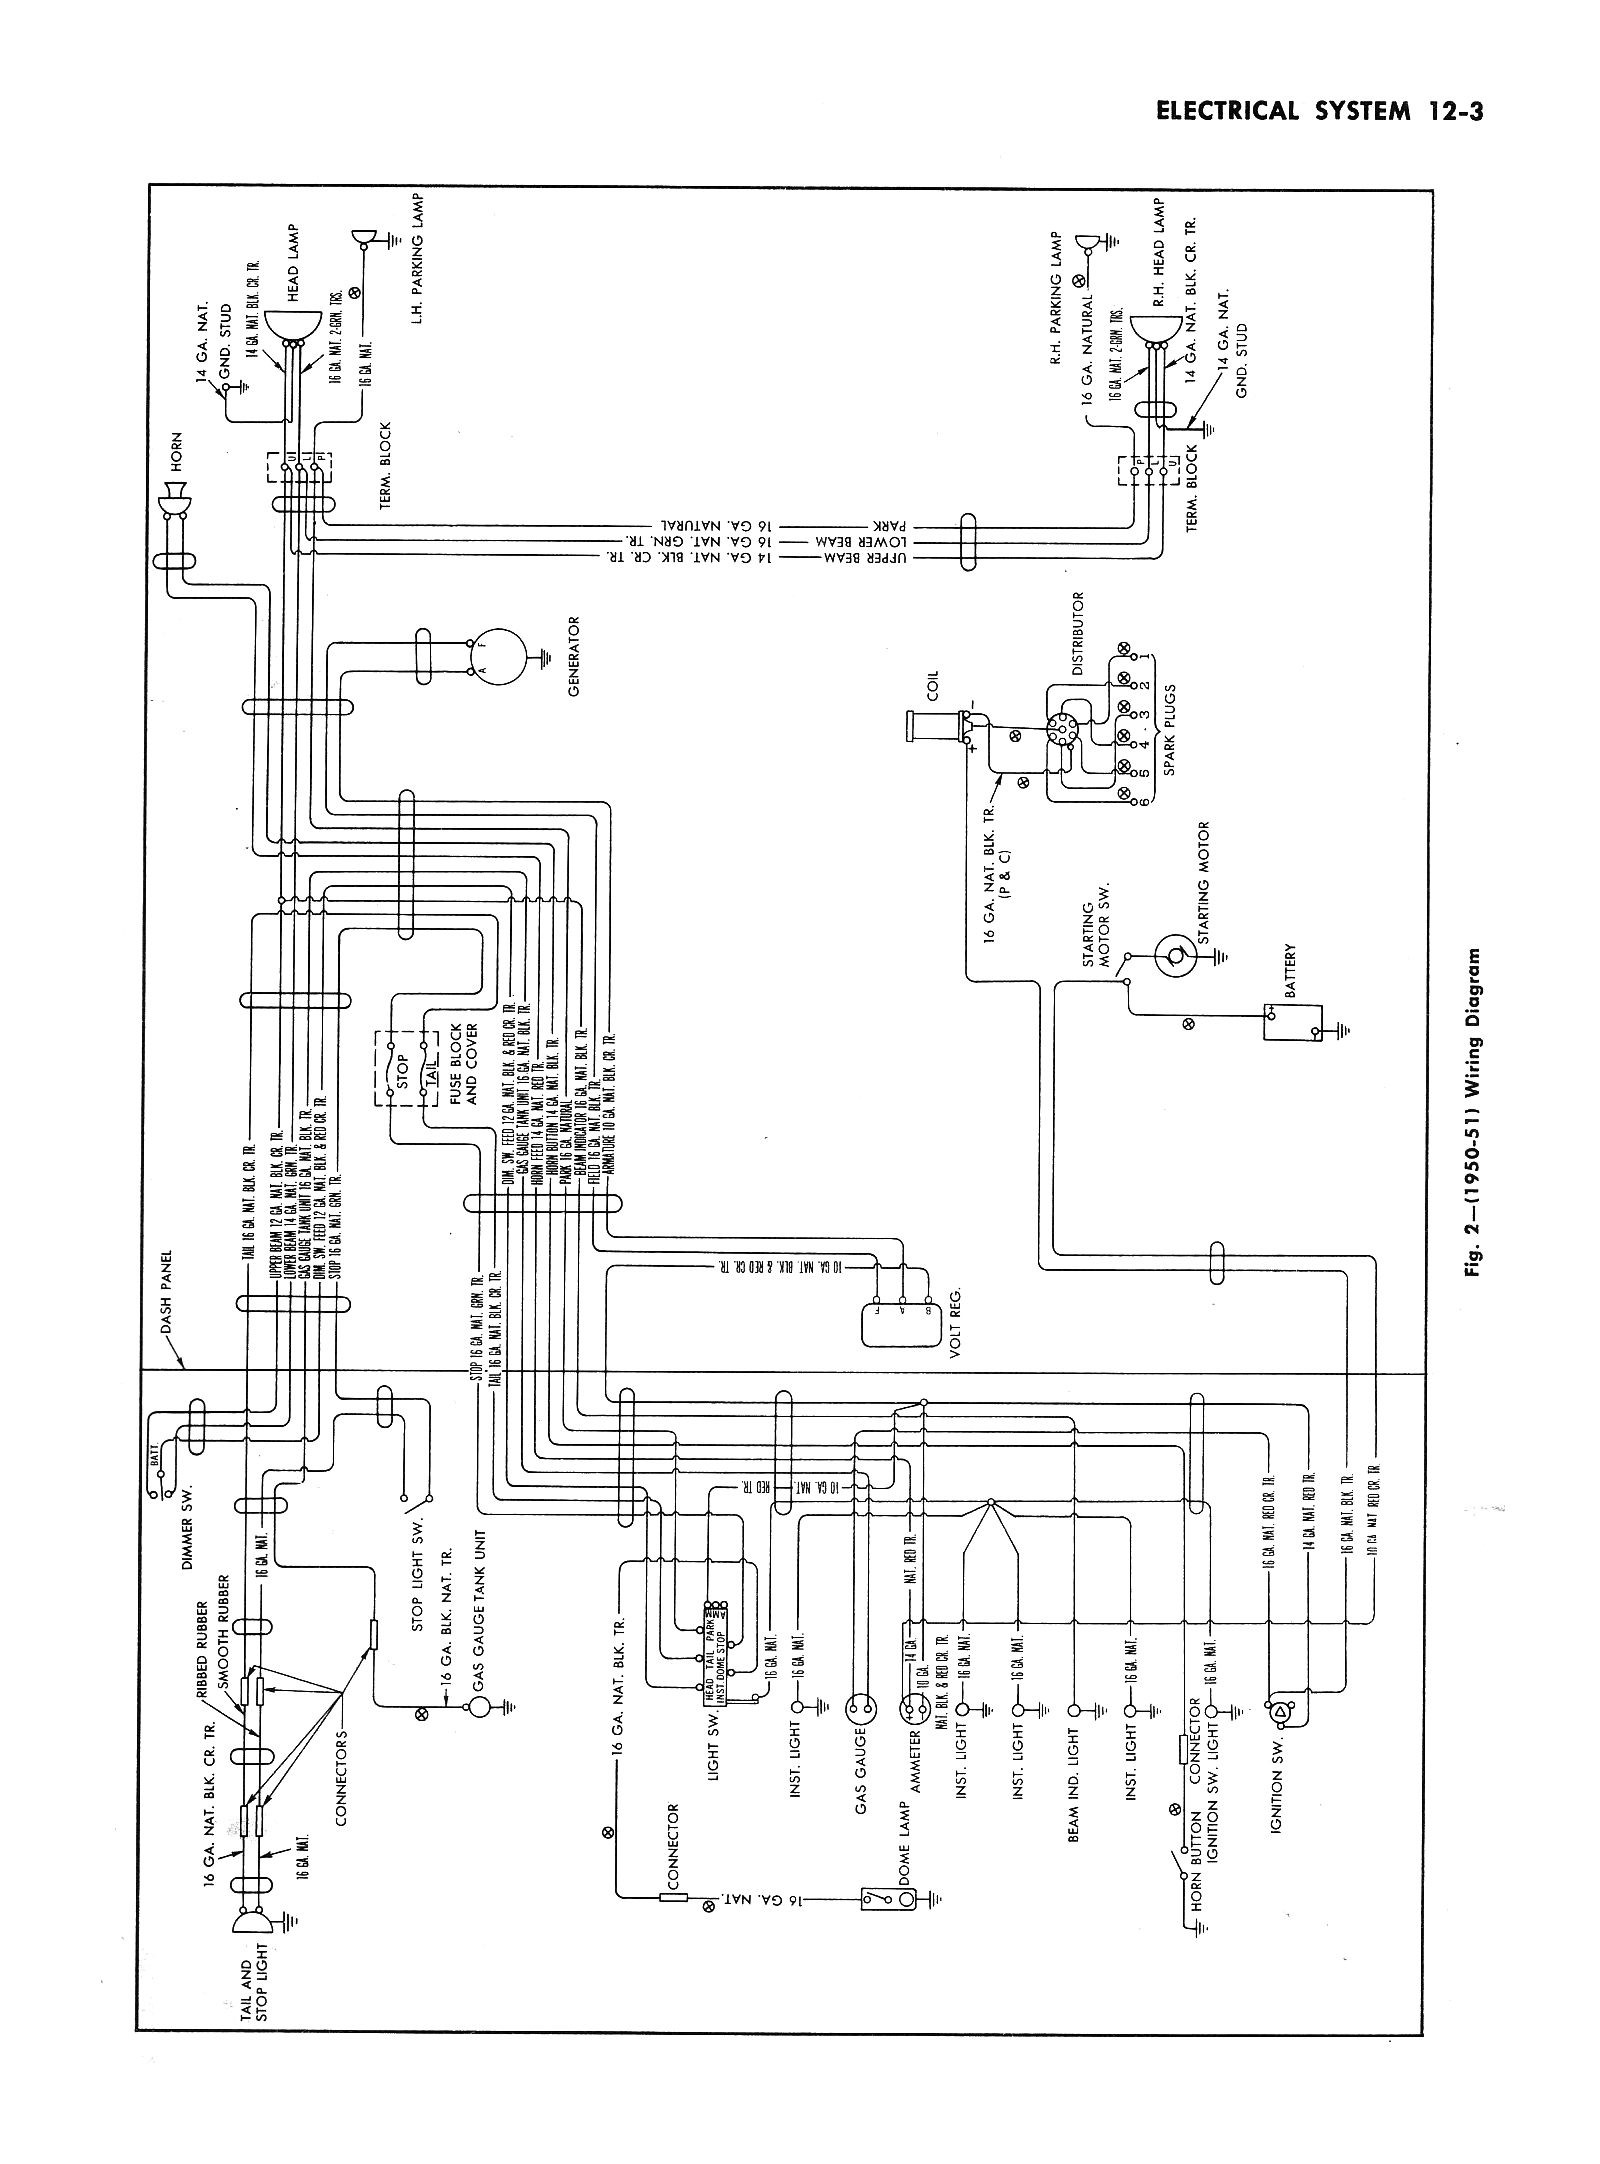 2005 4300 International Wiring Diagram together with International 9400i Truck Wiring Diagram also Nissan 2016 Murano Fuse Box Diagram additionally 2006 Chevy Impala Wiring Diagram And 0996b43f807d9255 Gif With besides 1uf82 Fuse Box Diagram 2001 Ford Expedition. on 2006 international 9400i wiring diagram